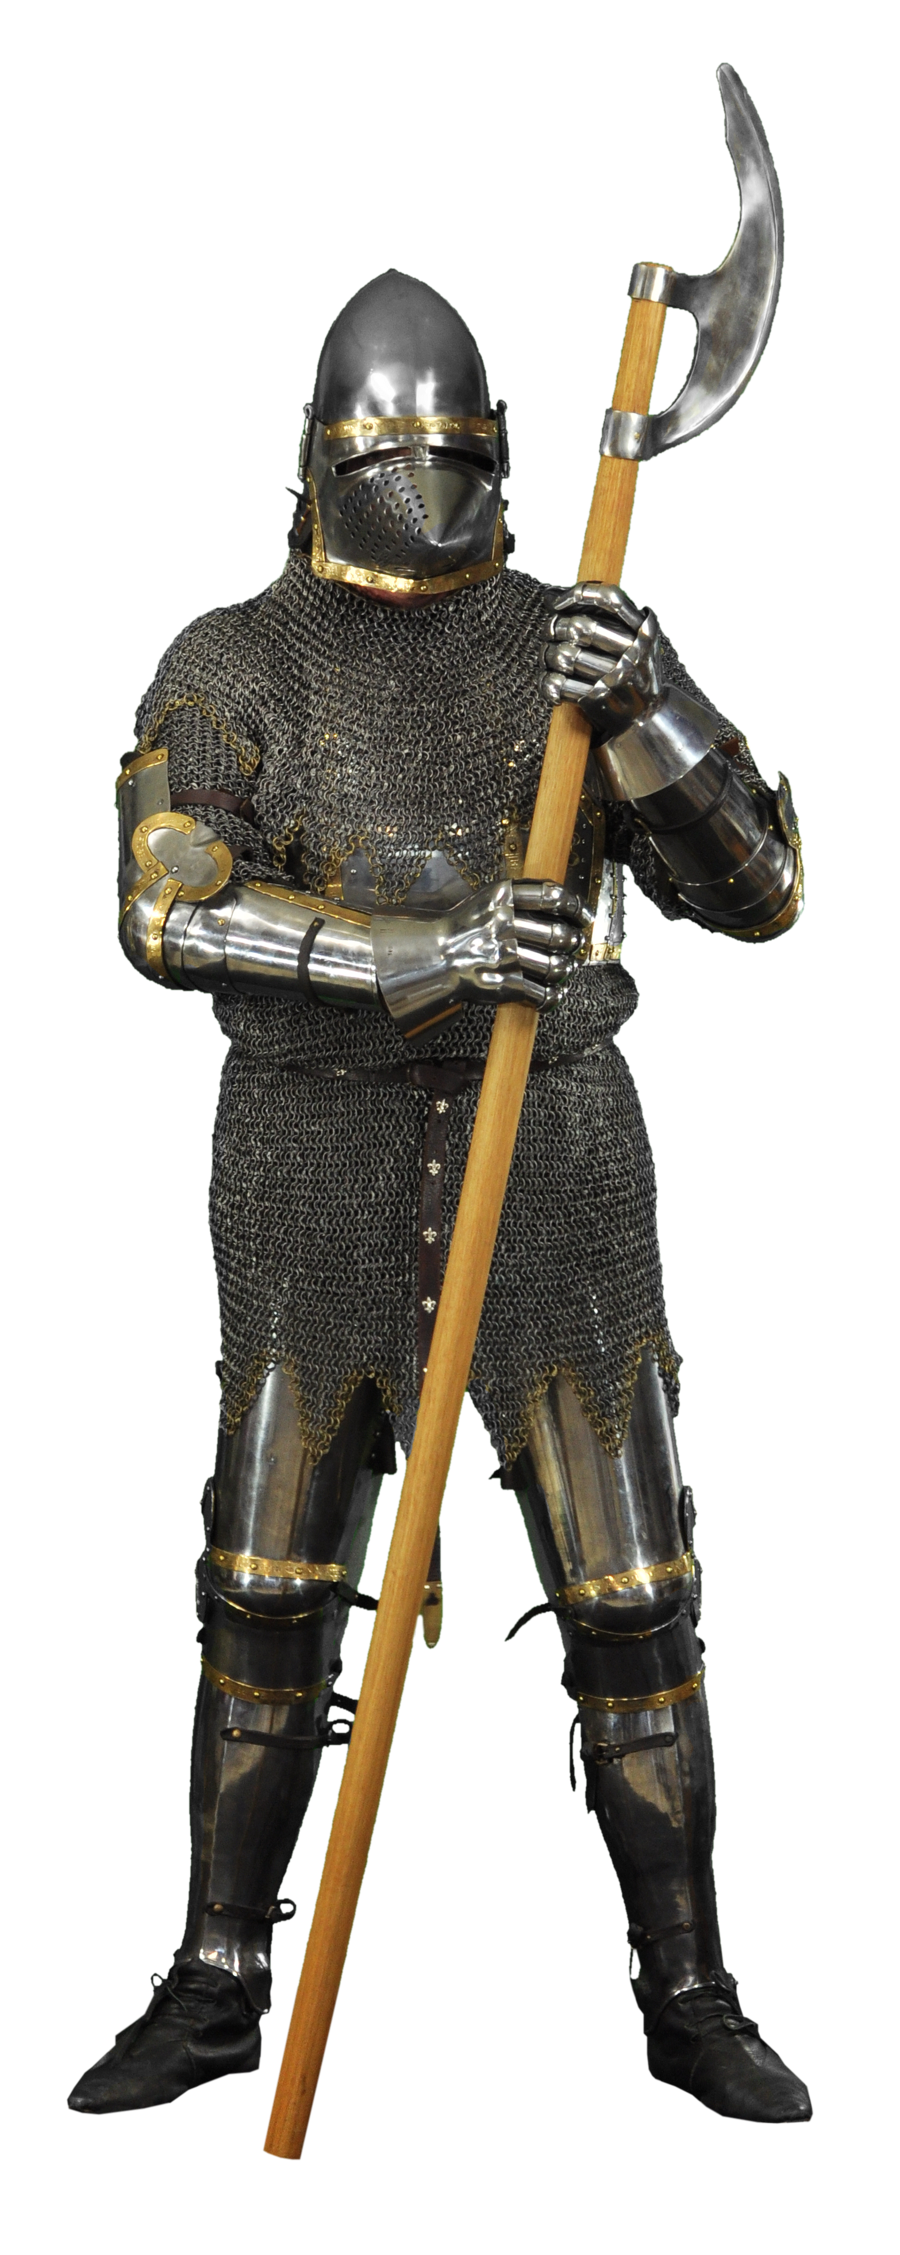 Medieval Knight 5 By Gin7gin8 D30ixbx Png 900 2 255 Pixels Medieval Knight Knight In Shining Armor Knight